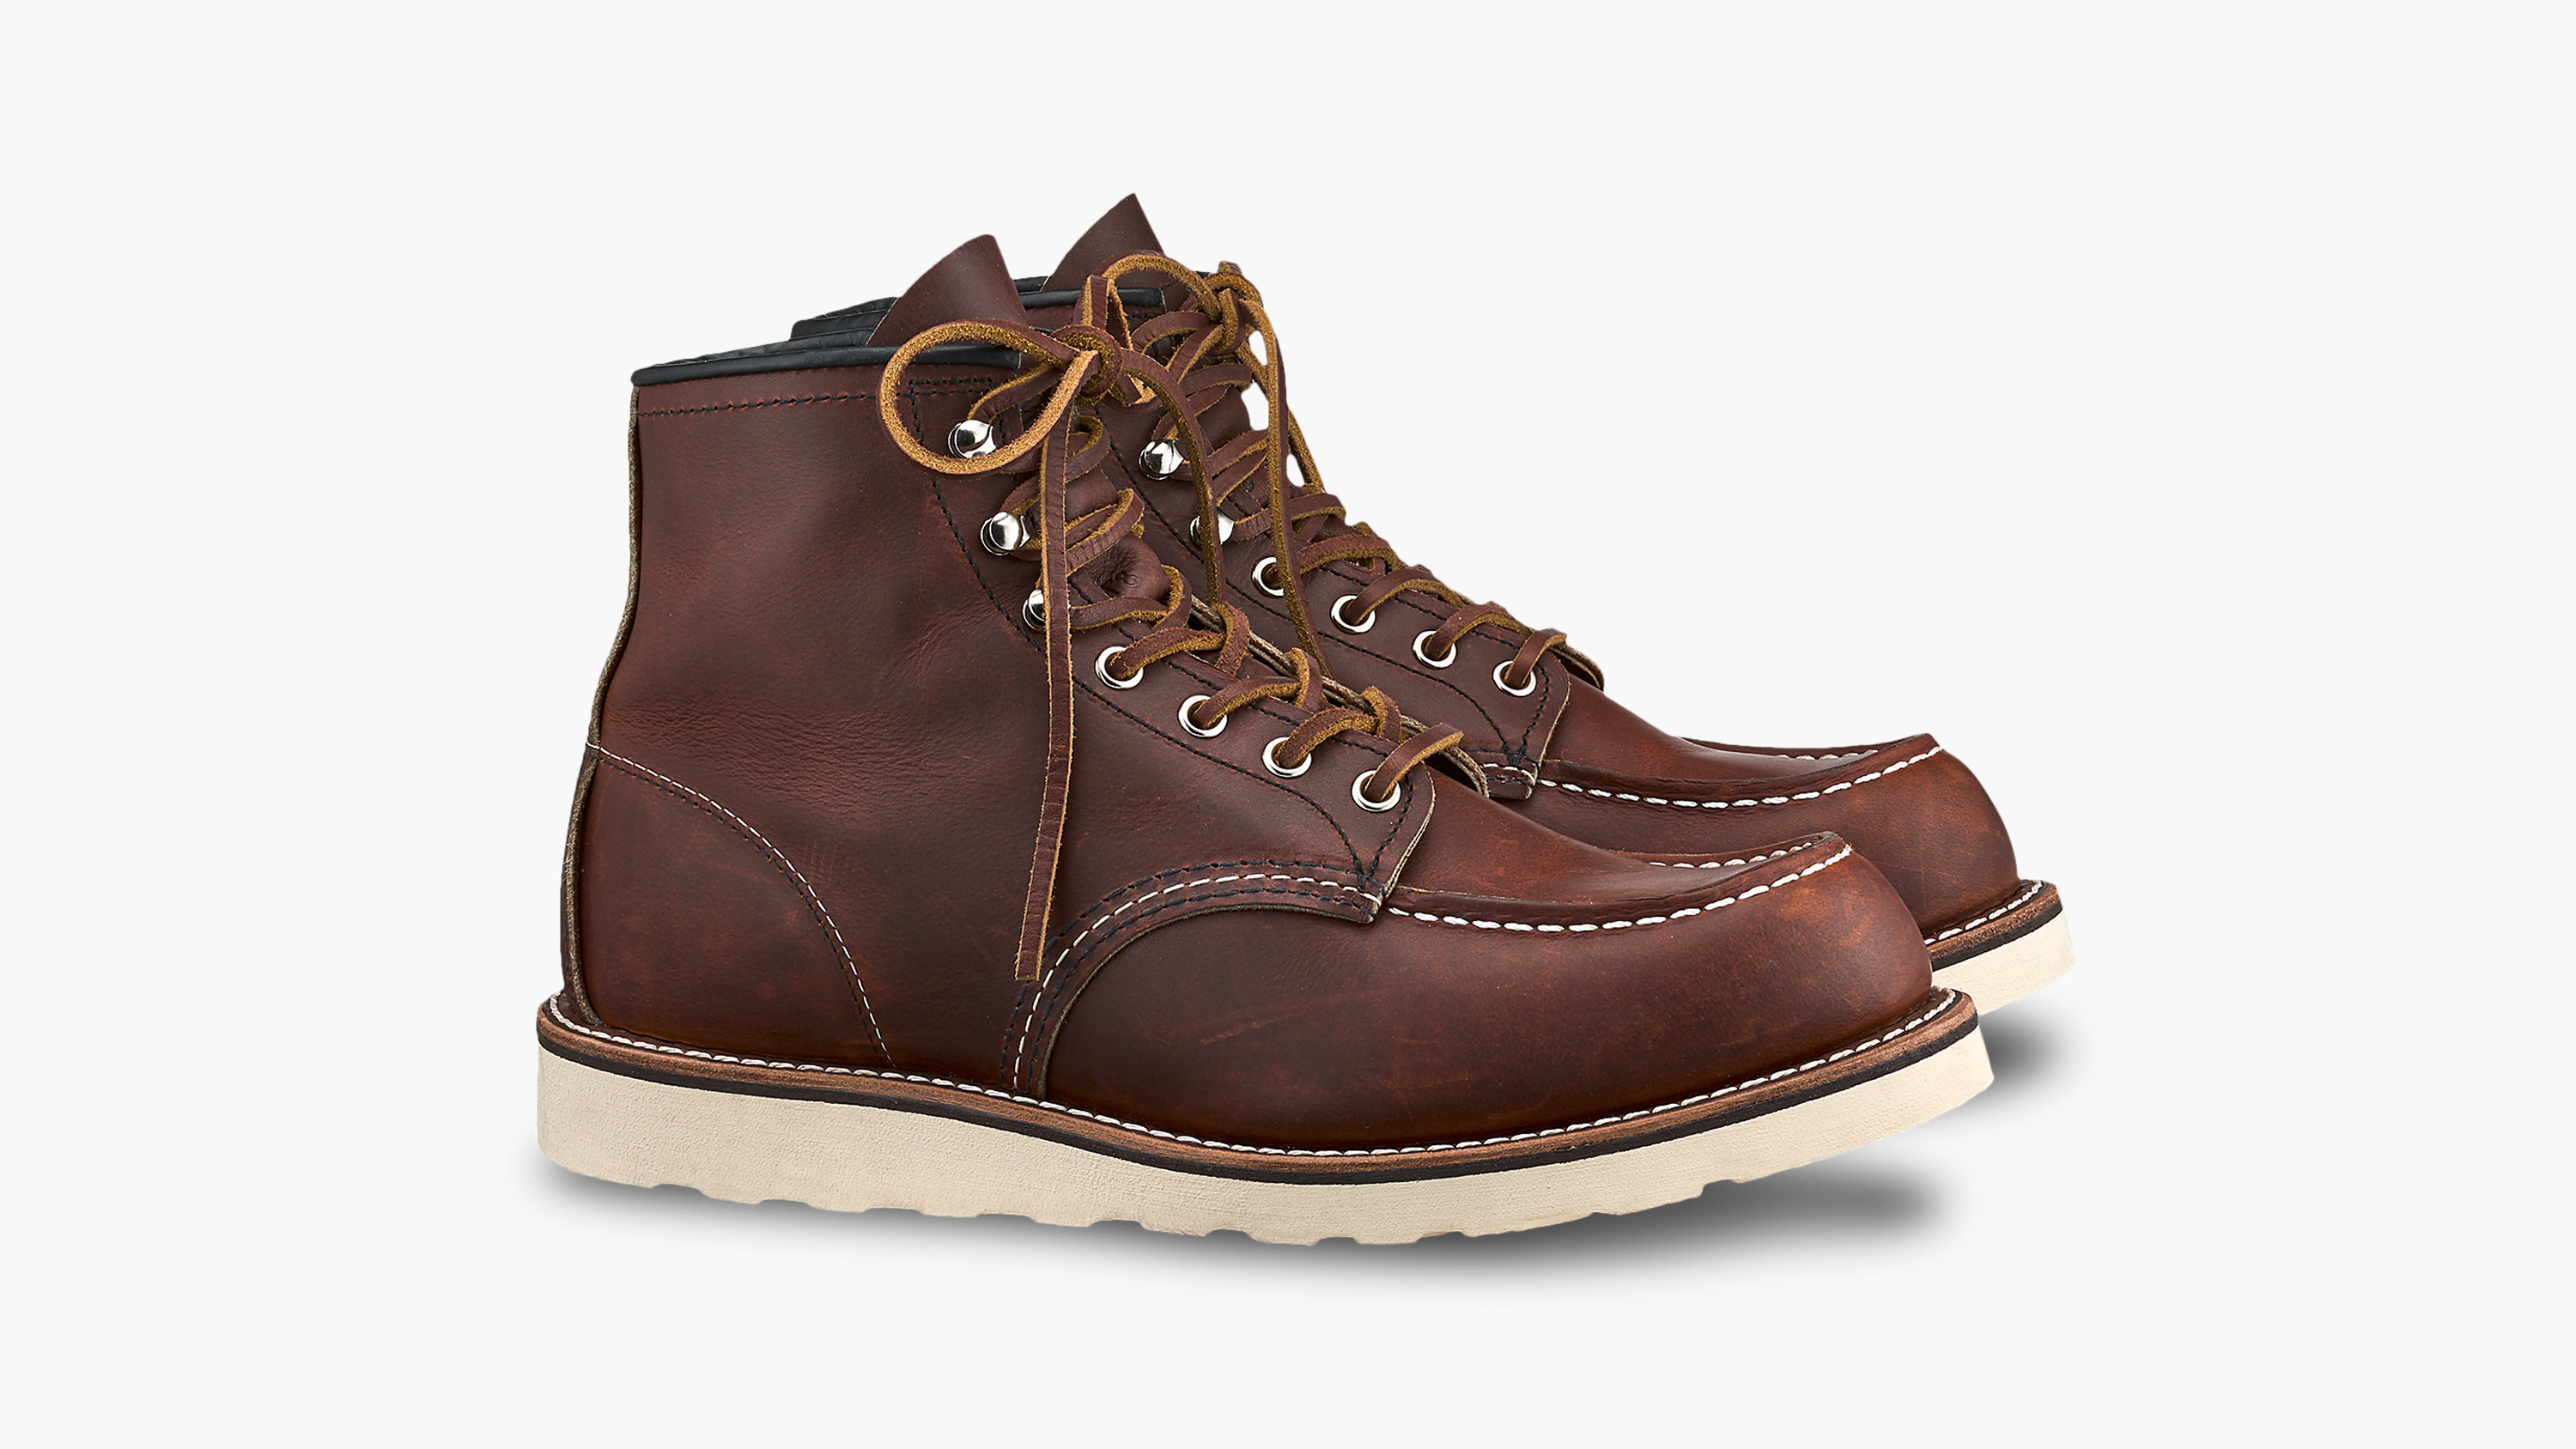 Red Wing 875 Moc Toe Boots